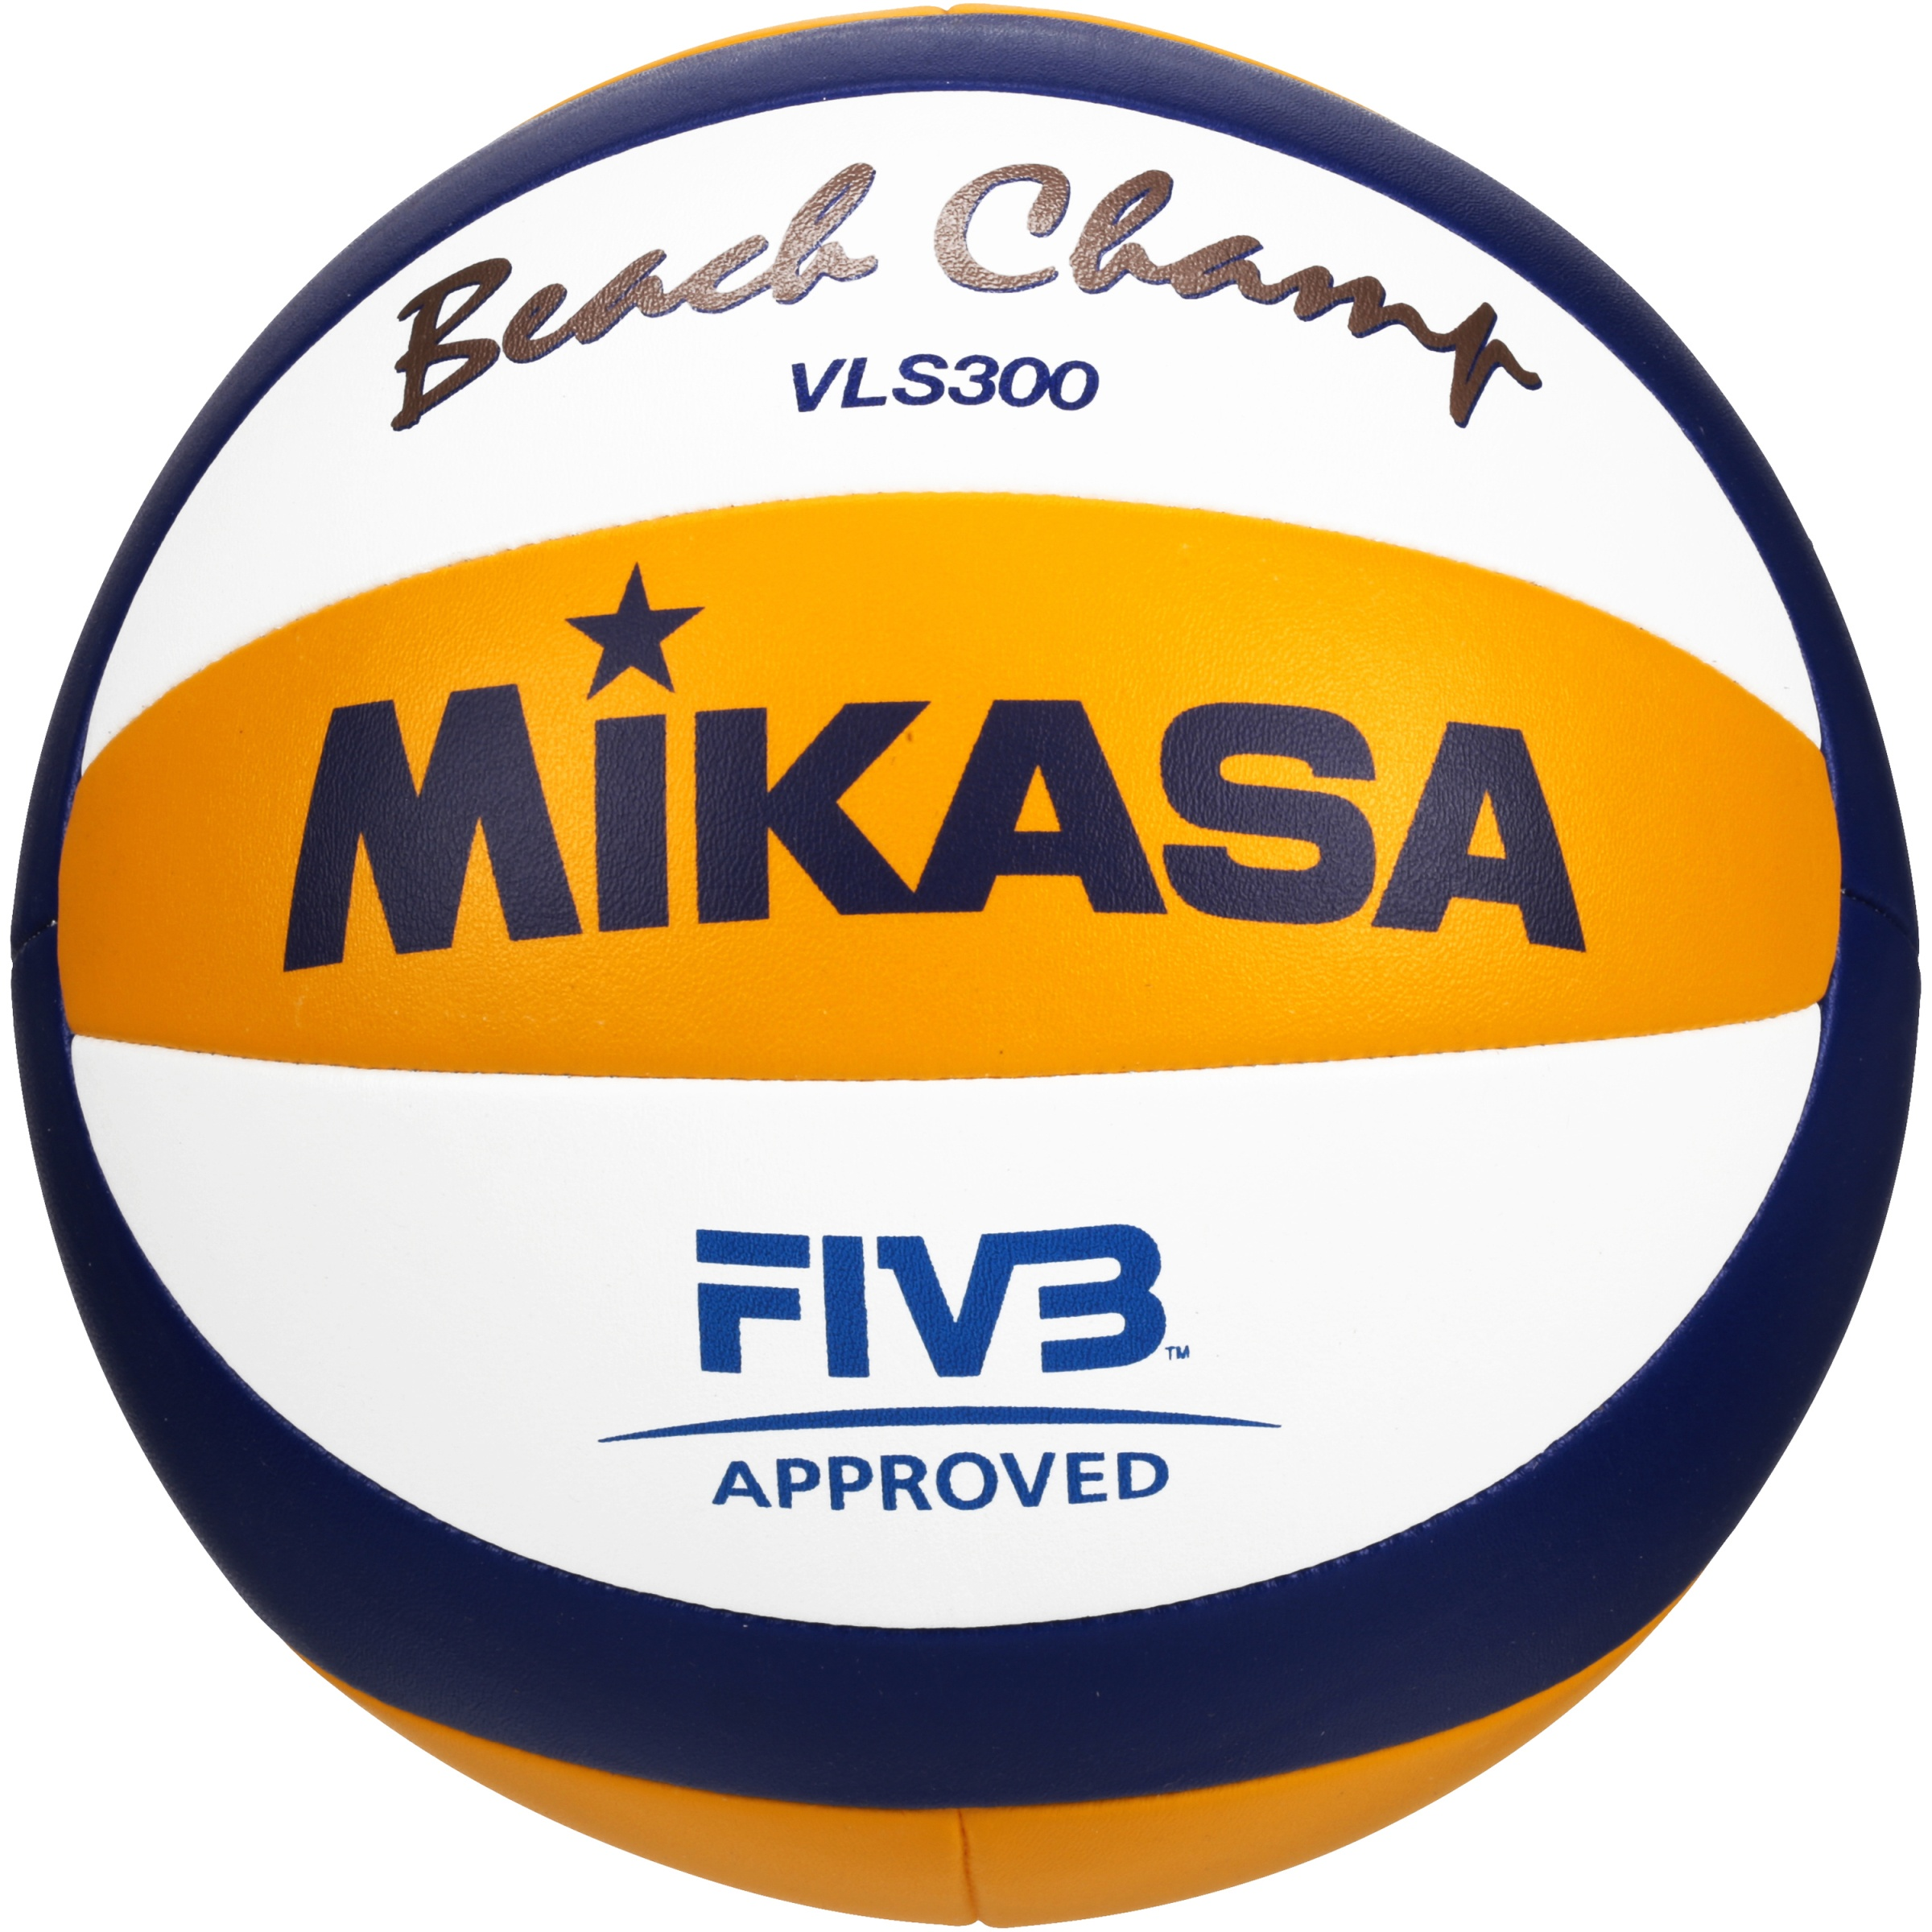 Mikasa Beach Champ VLS300 Outdoor Volleyball